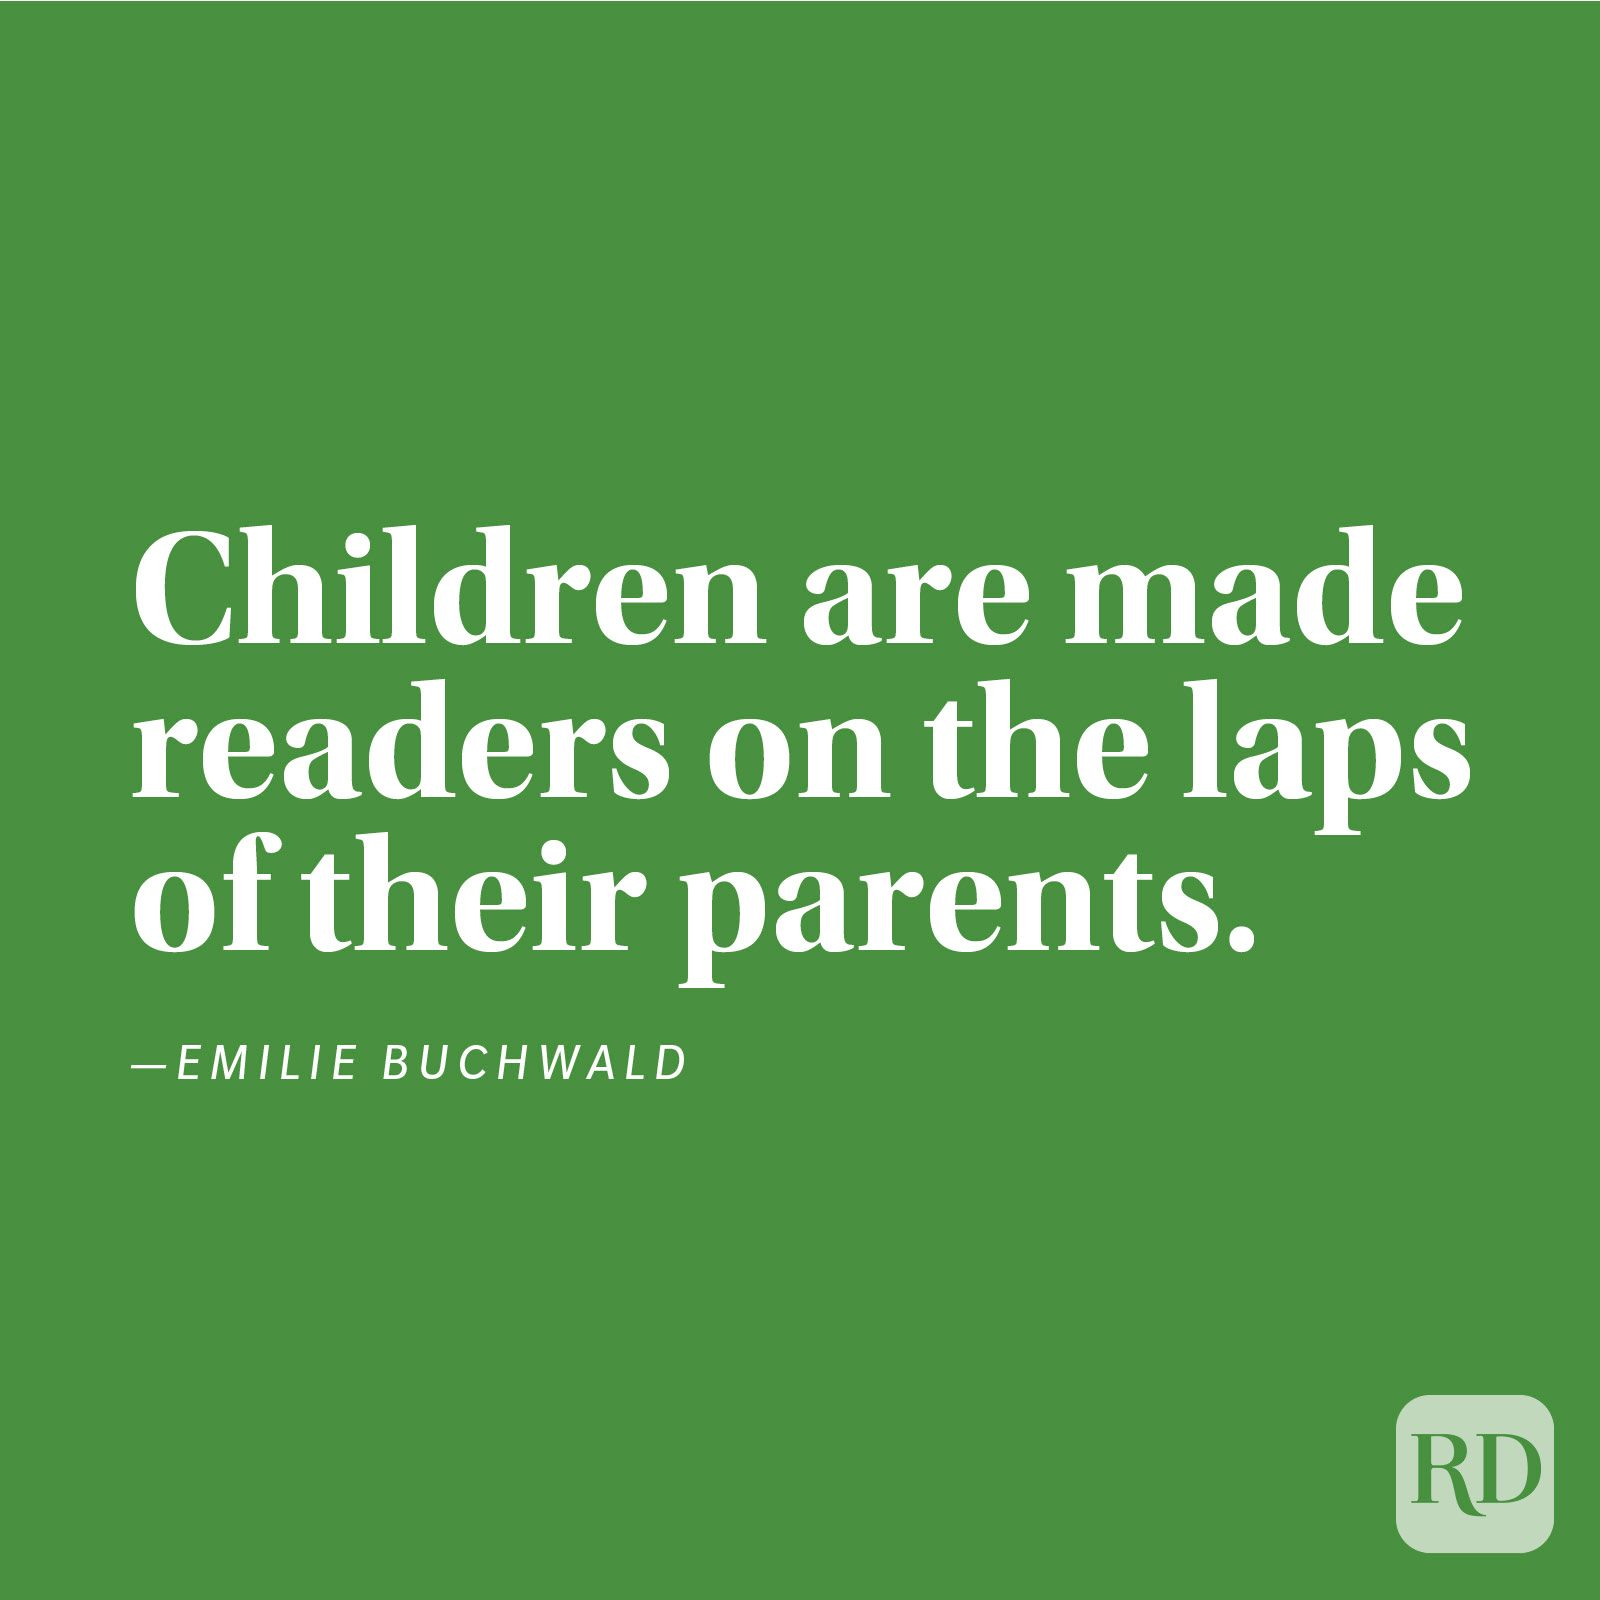 """Children are made readers on the laps of their parents."" —Emilie Buchwald."